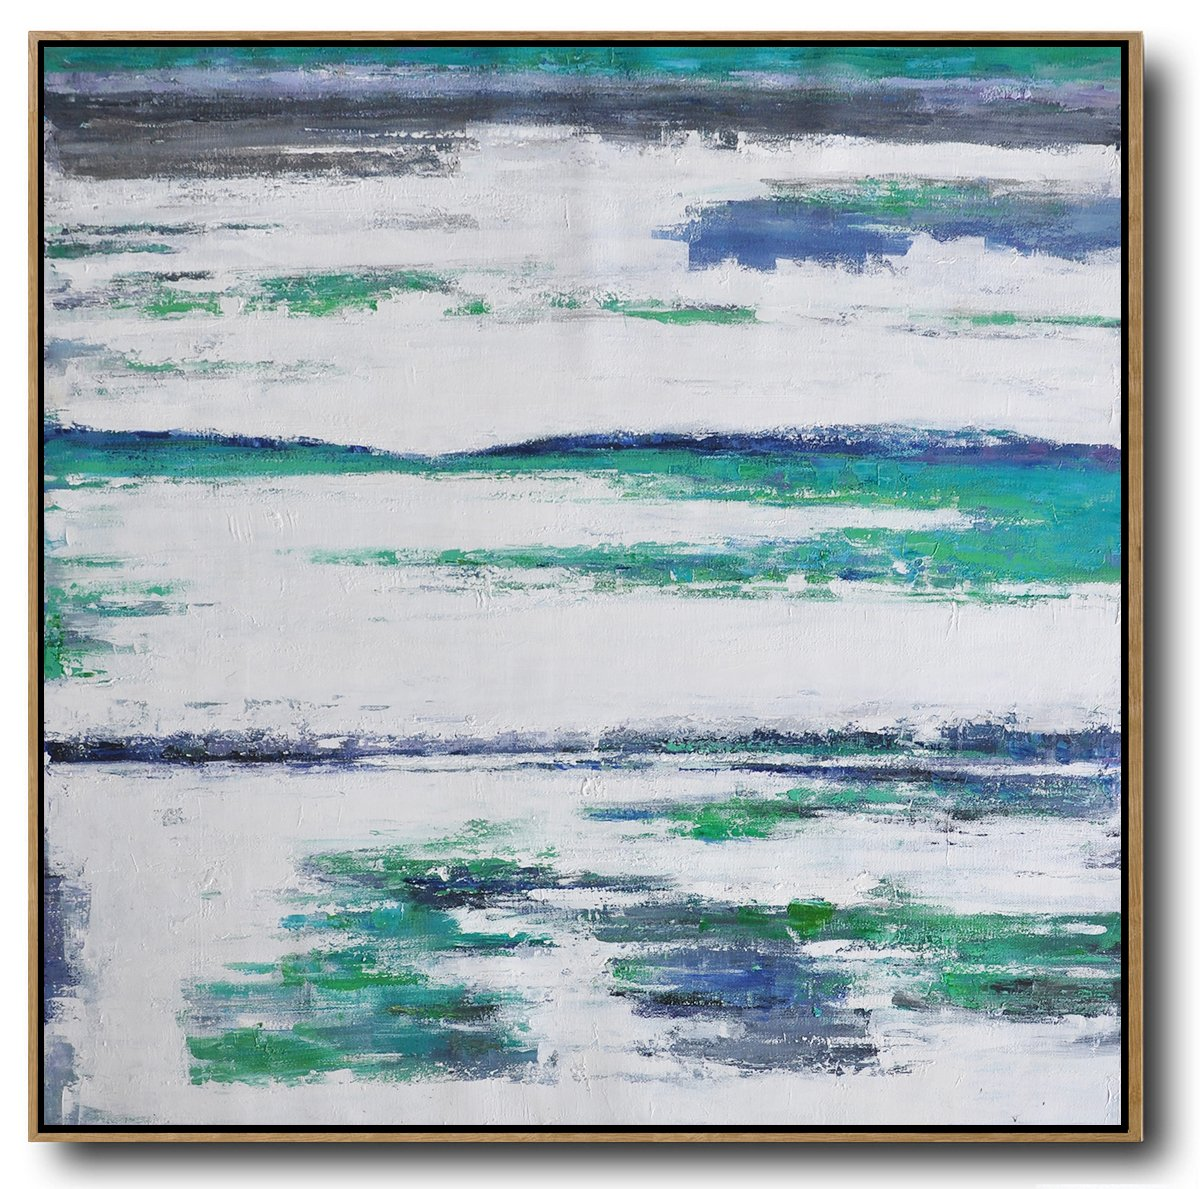 Extra Large Abstract Painting On Canvas,Large Abstract Landscape Oil Painting On Canvas,Large Wall Art Canvas,White,Grey,Blue,,Green.etc